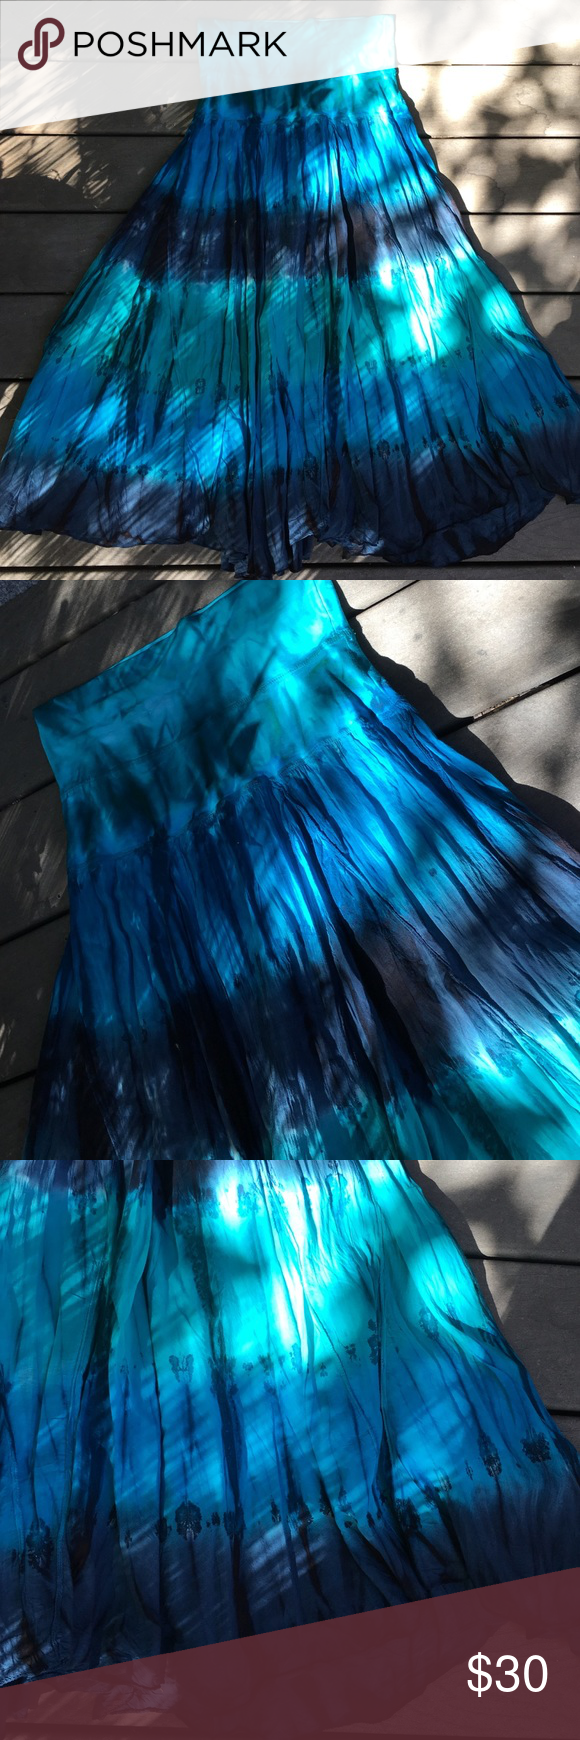 NWT hippie gypsy tie dye skirt Super cute colors of teals and blues, high waisted or fold over waistband Skirts Maxi